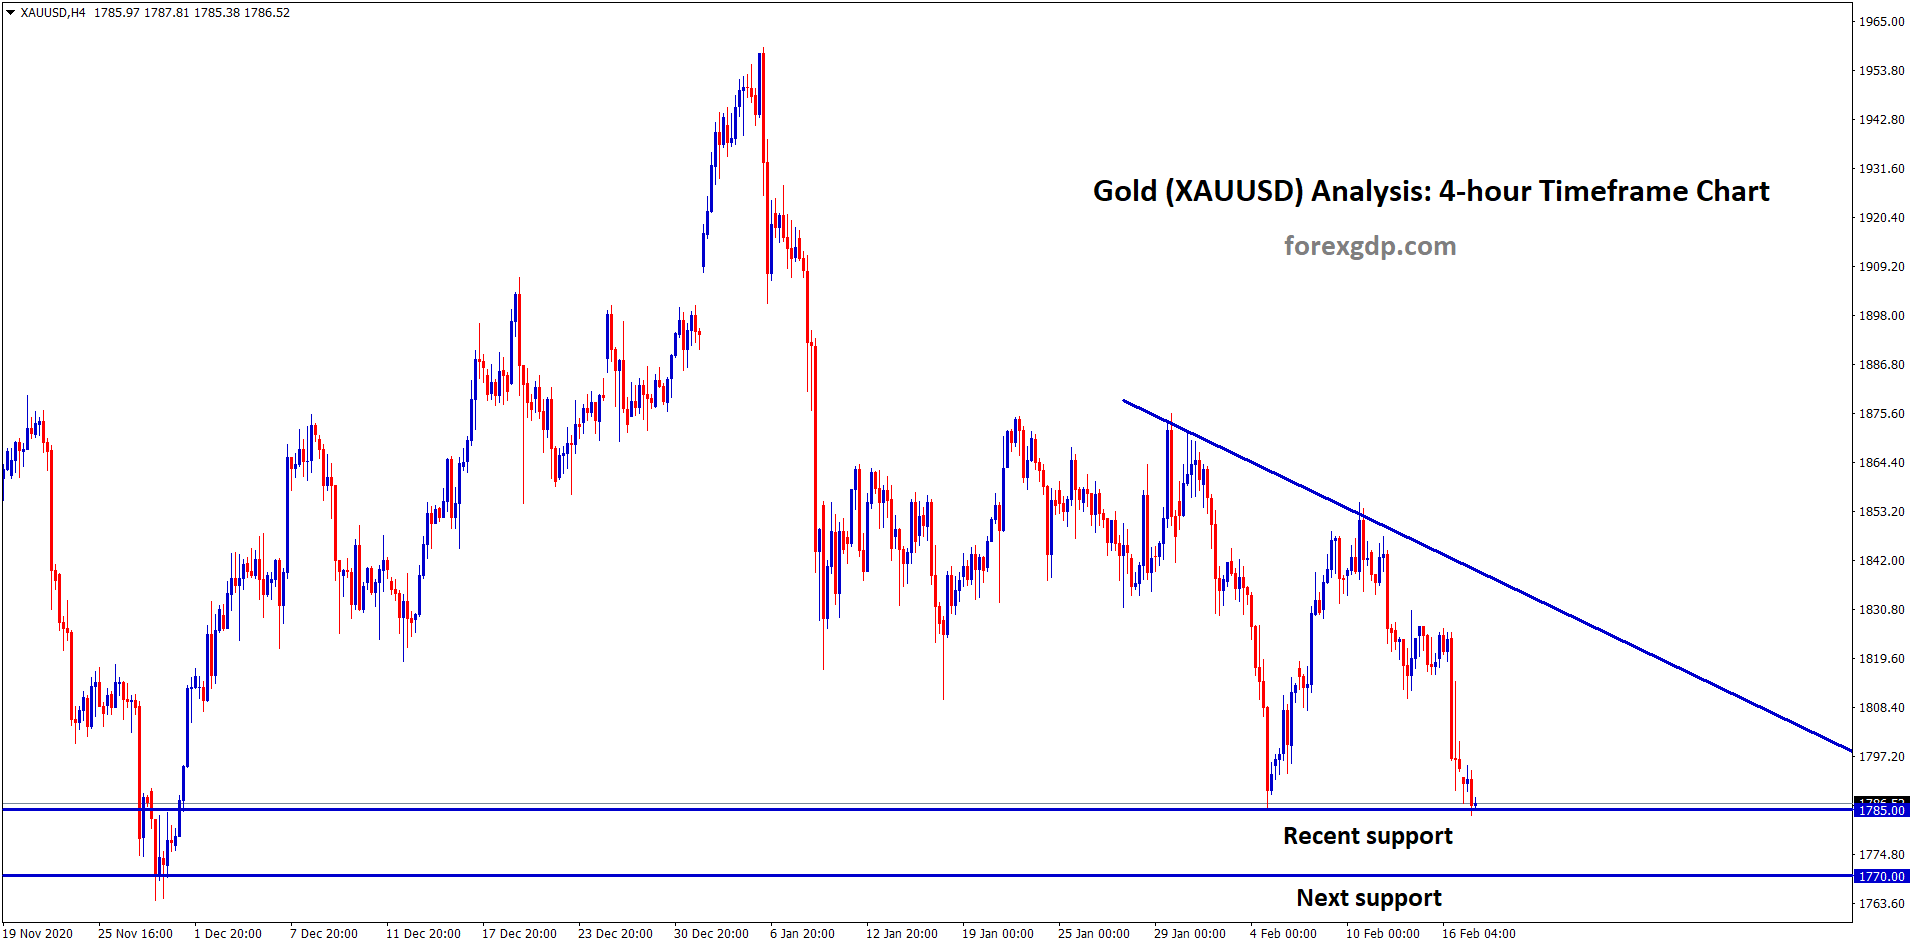 gold reached the recent support in h4